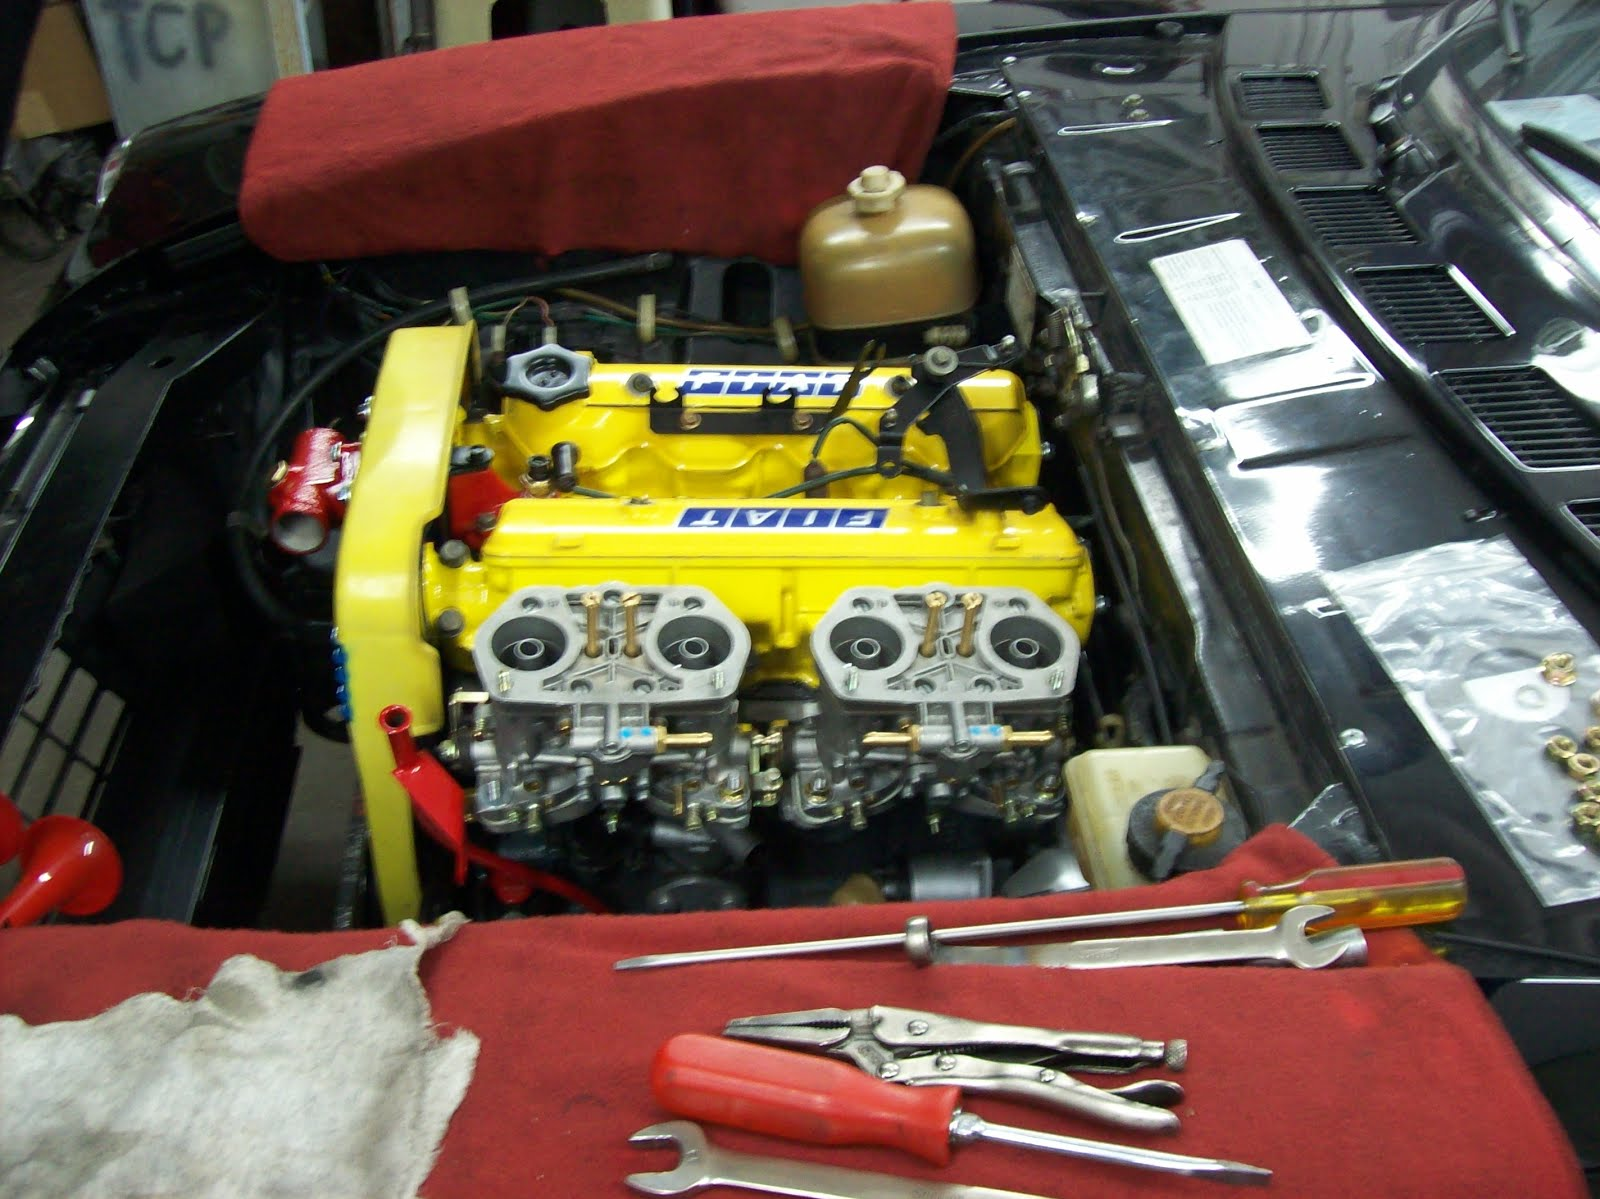 Vintage Auto Restoration A Peek Under The Hood Of Customized Fiat Timing Belt These Next Two Are Fitting And Prepping For Tuning Carburetors Really Make Car Come Alive